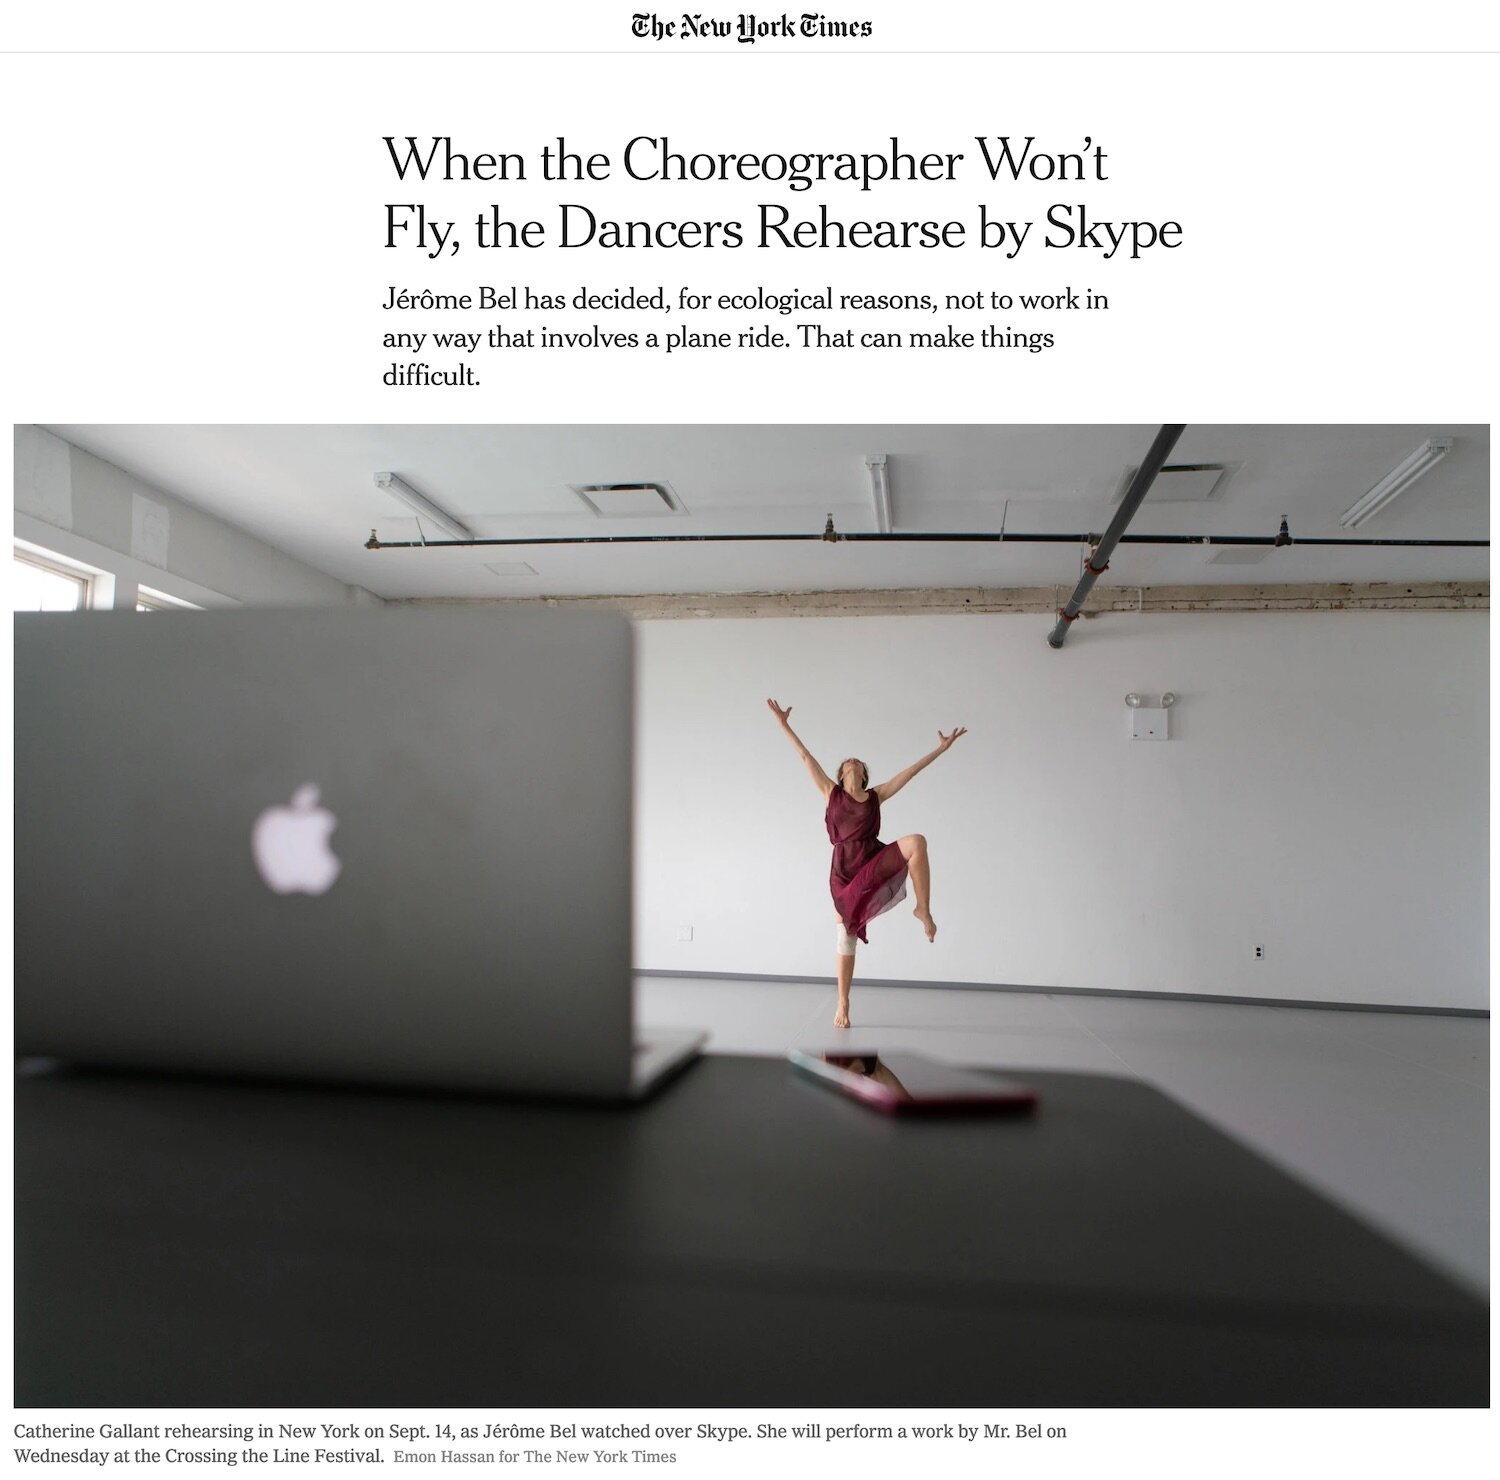 CatherineGallantForTheNewYorkTimes.jpg